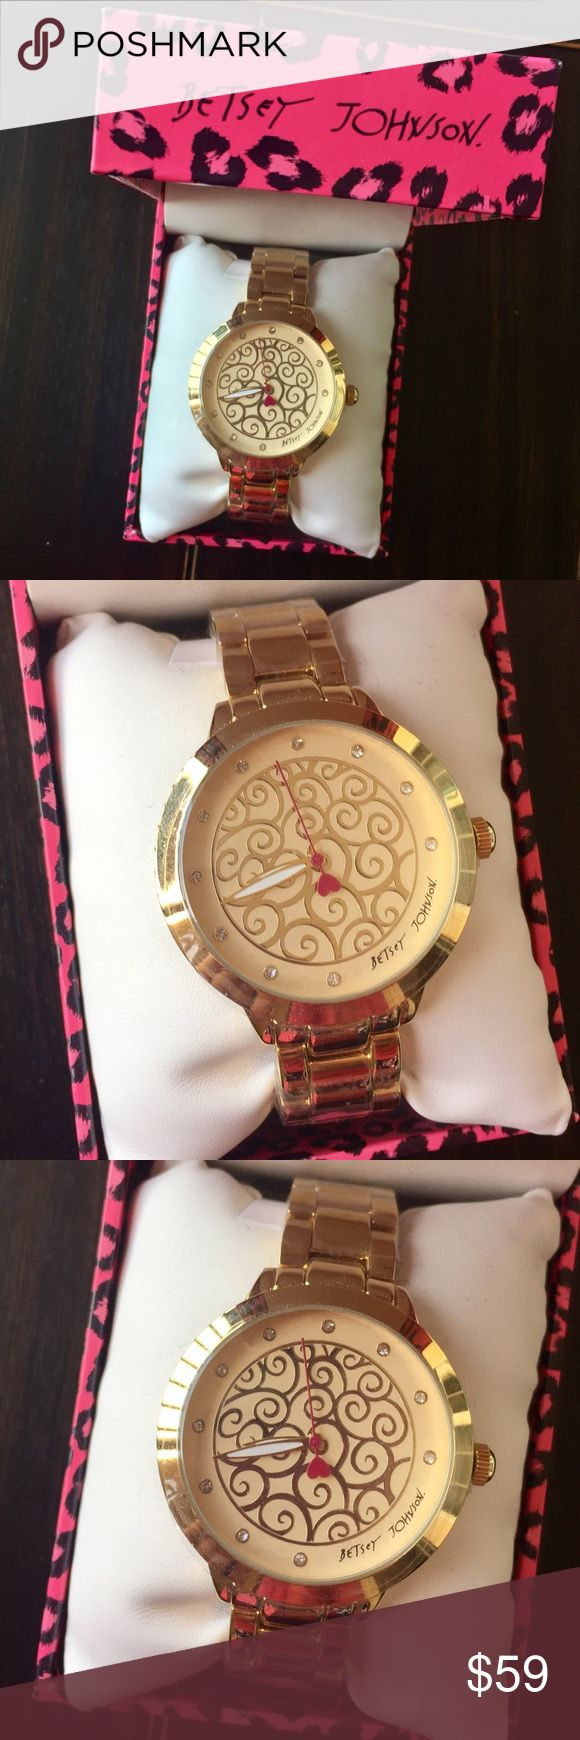 Betsey Johnson Gold Mosaic Watch New in Box Betsey Johnson Gold Mosaic Watch  - comes in original pink leopard print Betsey box.                             - Dial Color: Gold with unique mosaic design  - Hands: White luminous and fuchsia second hand - Markers: Crystal Stone - Bracelet material: Stainless steel - Movement: Quartz Betsey Johnson Accessories Watches